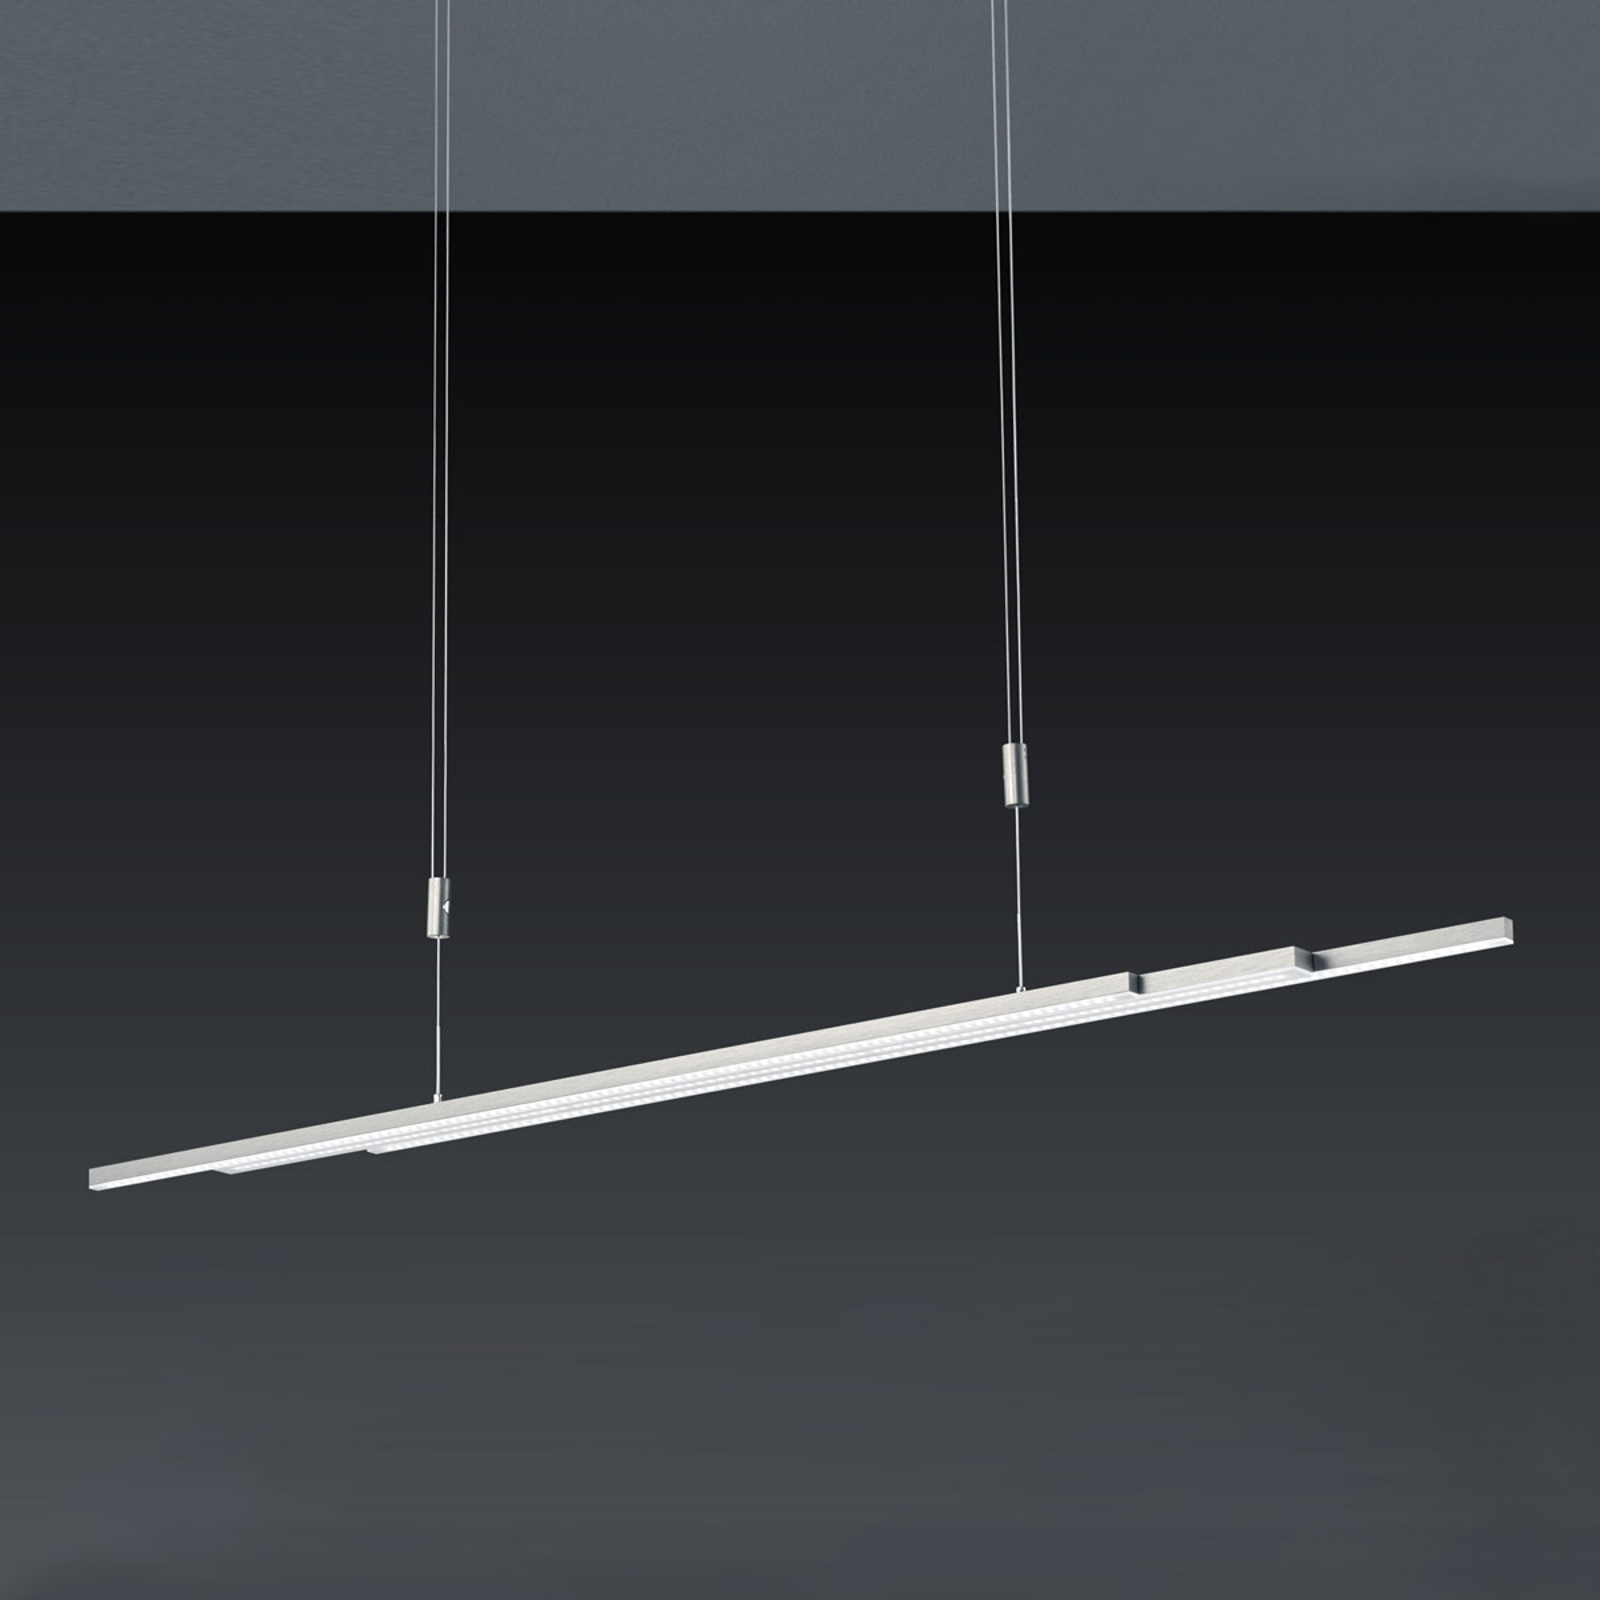 BANKAMP L-lightLINE lampa wisząca LED, nikiel